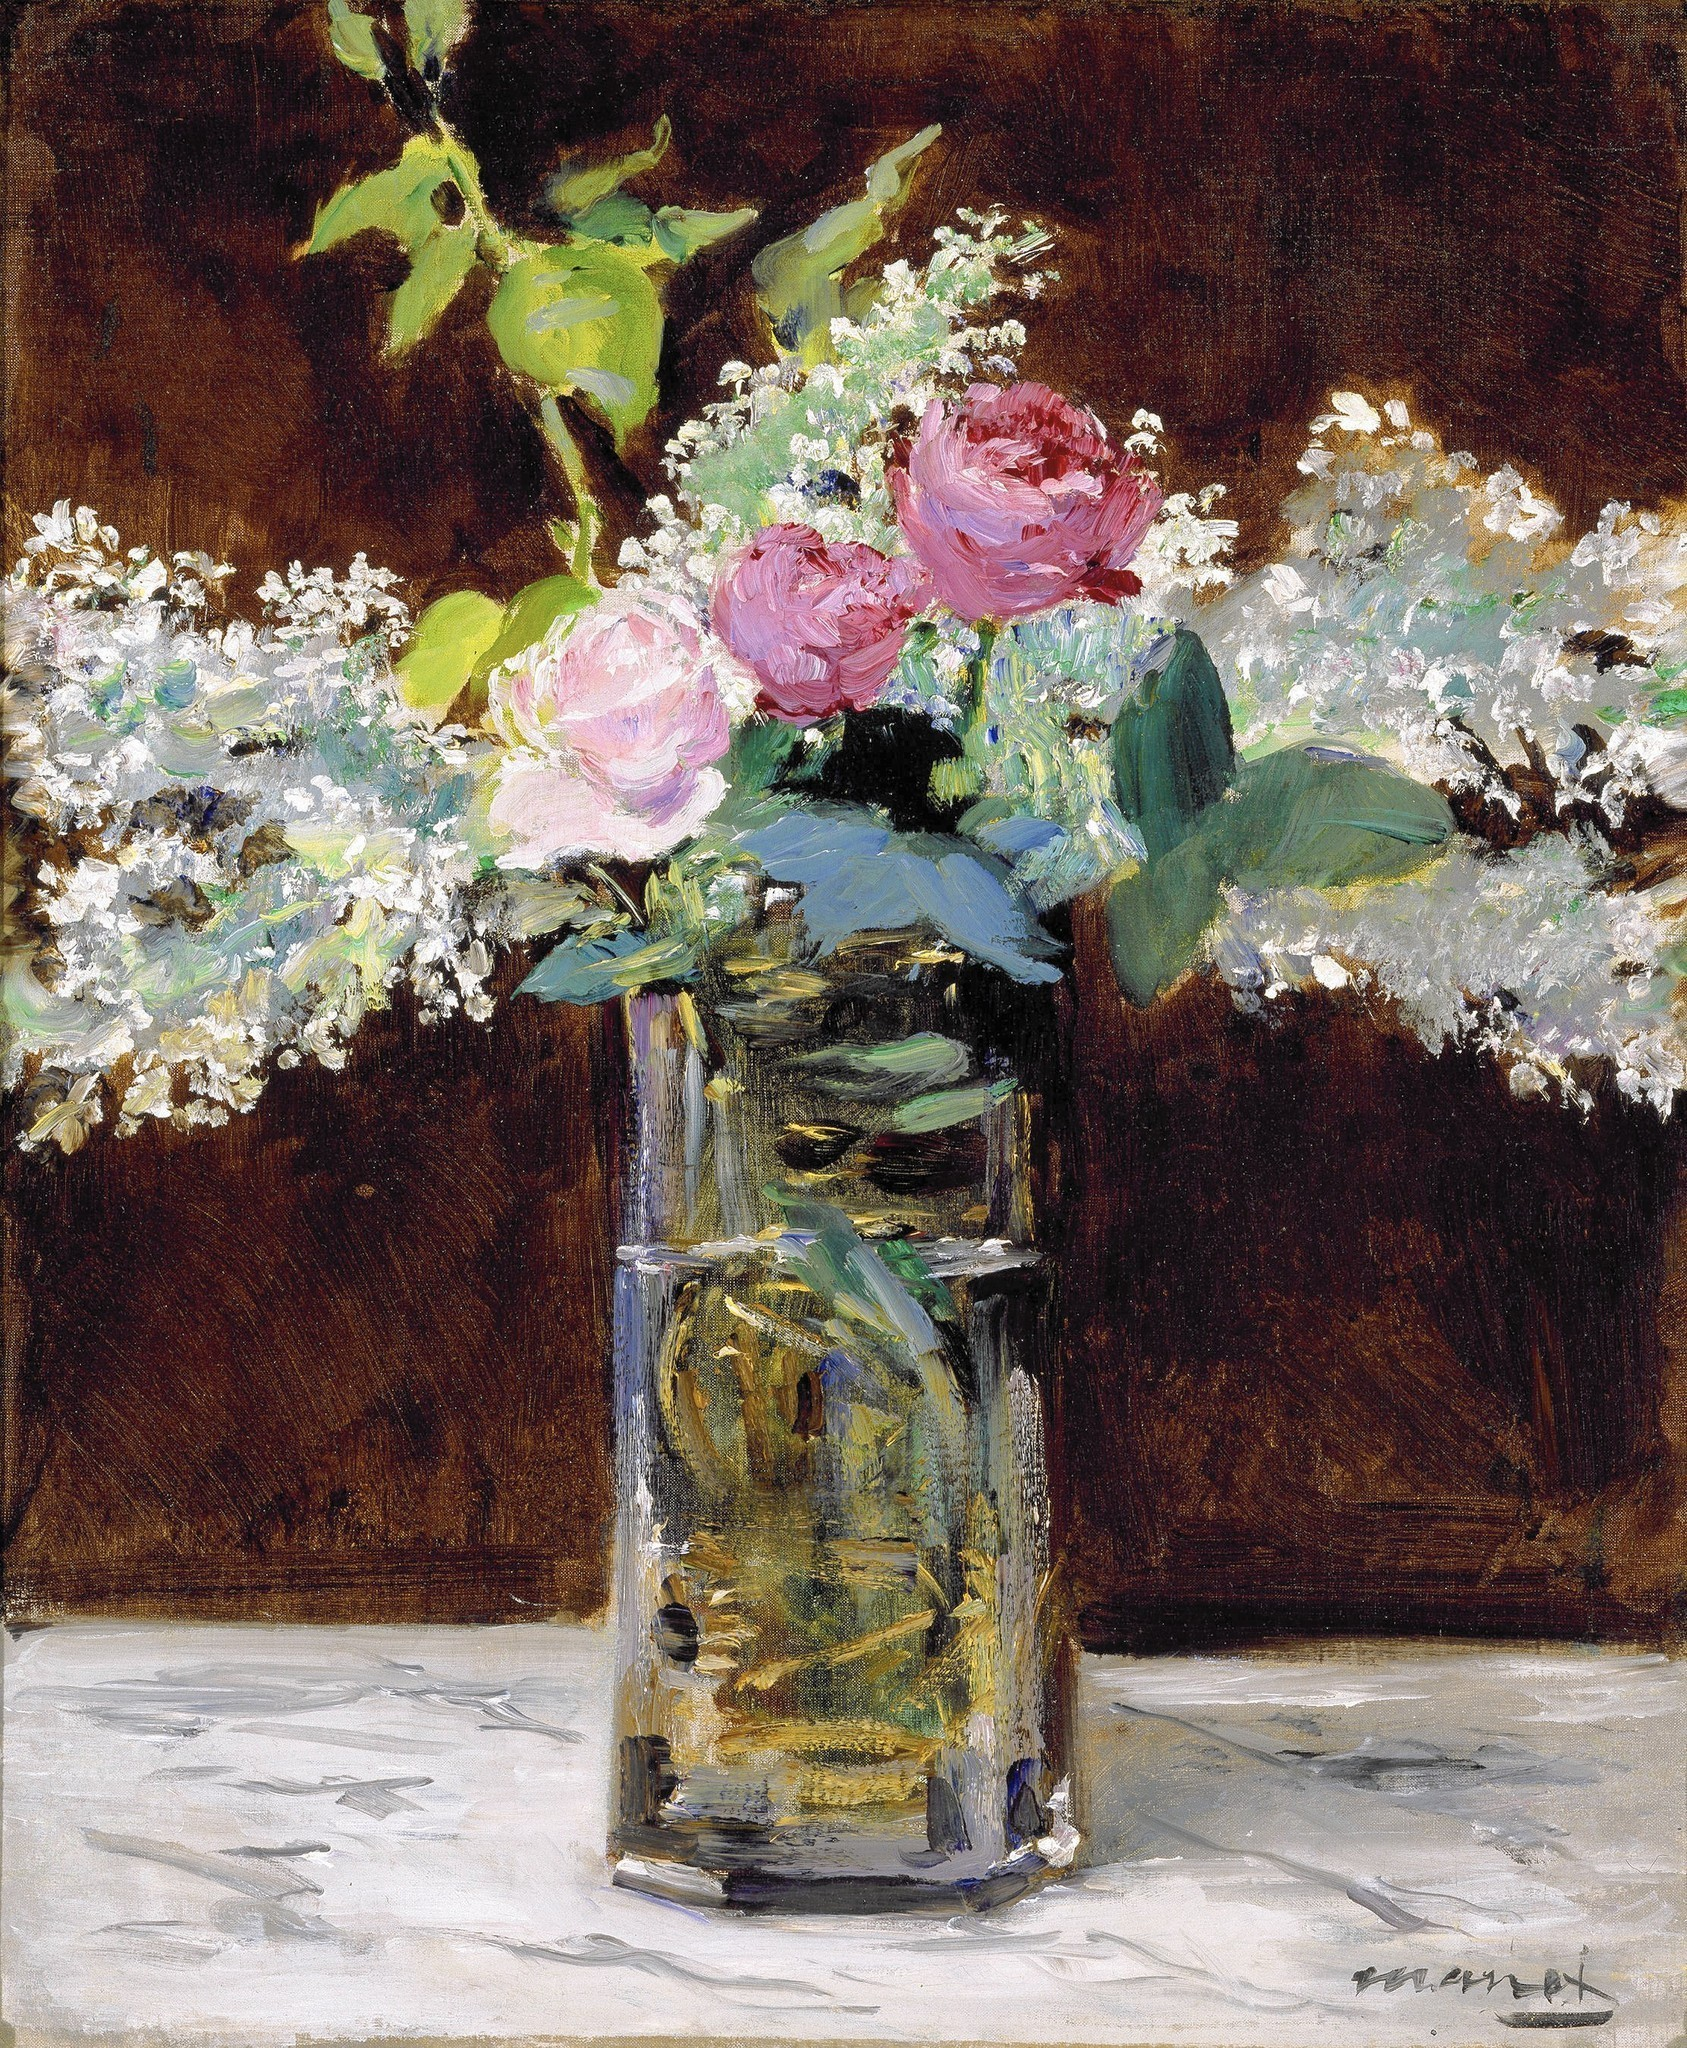 Exploring The Art Of The Flower With Manet Van Gogh And